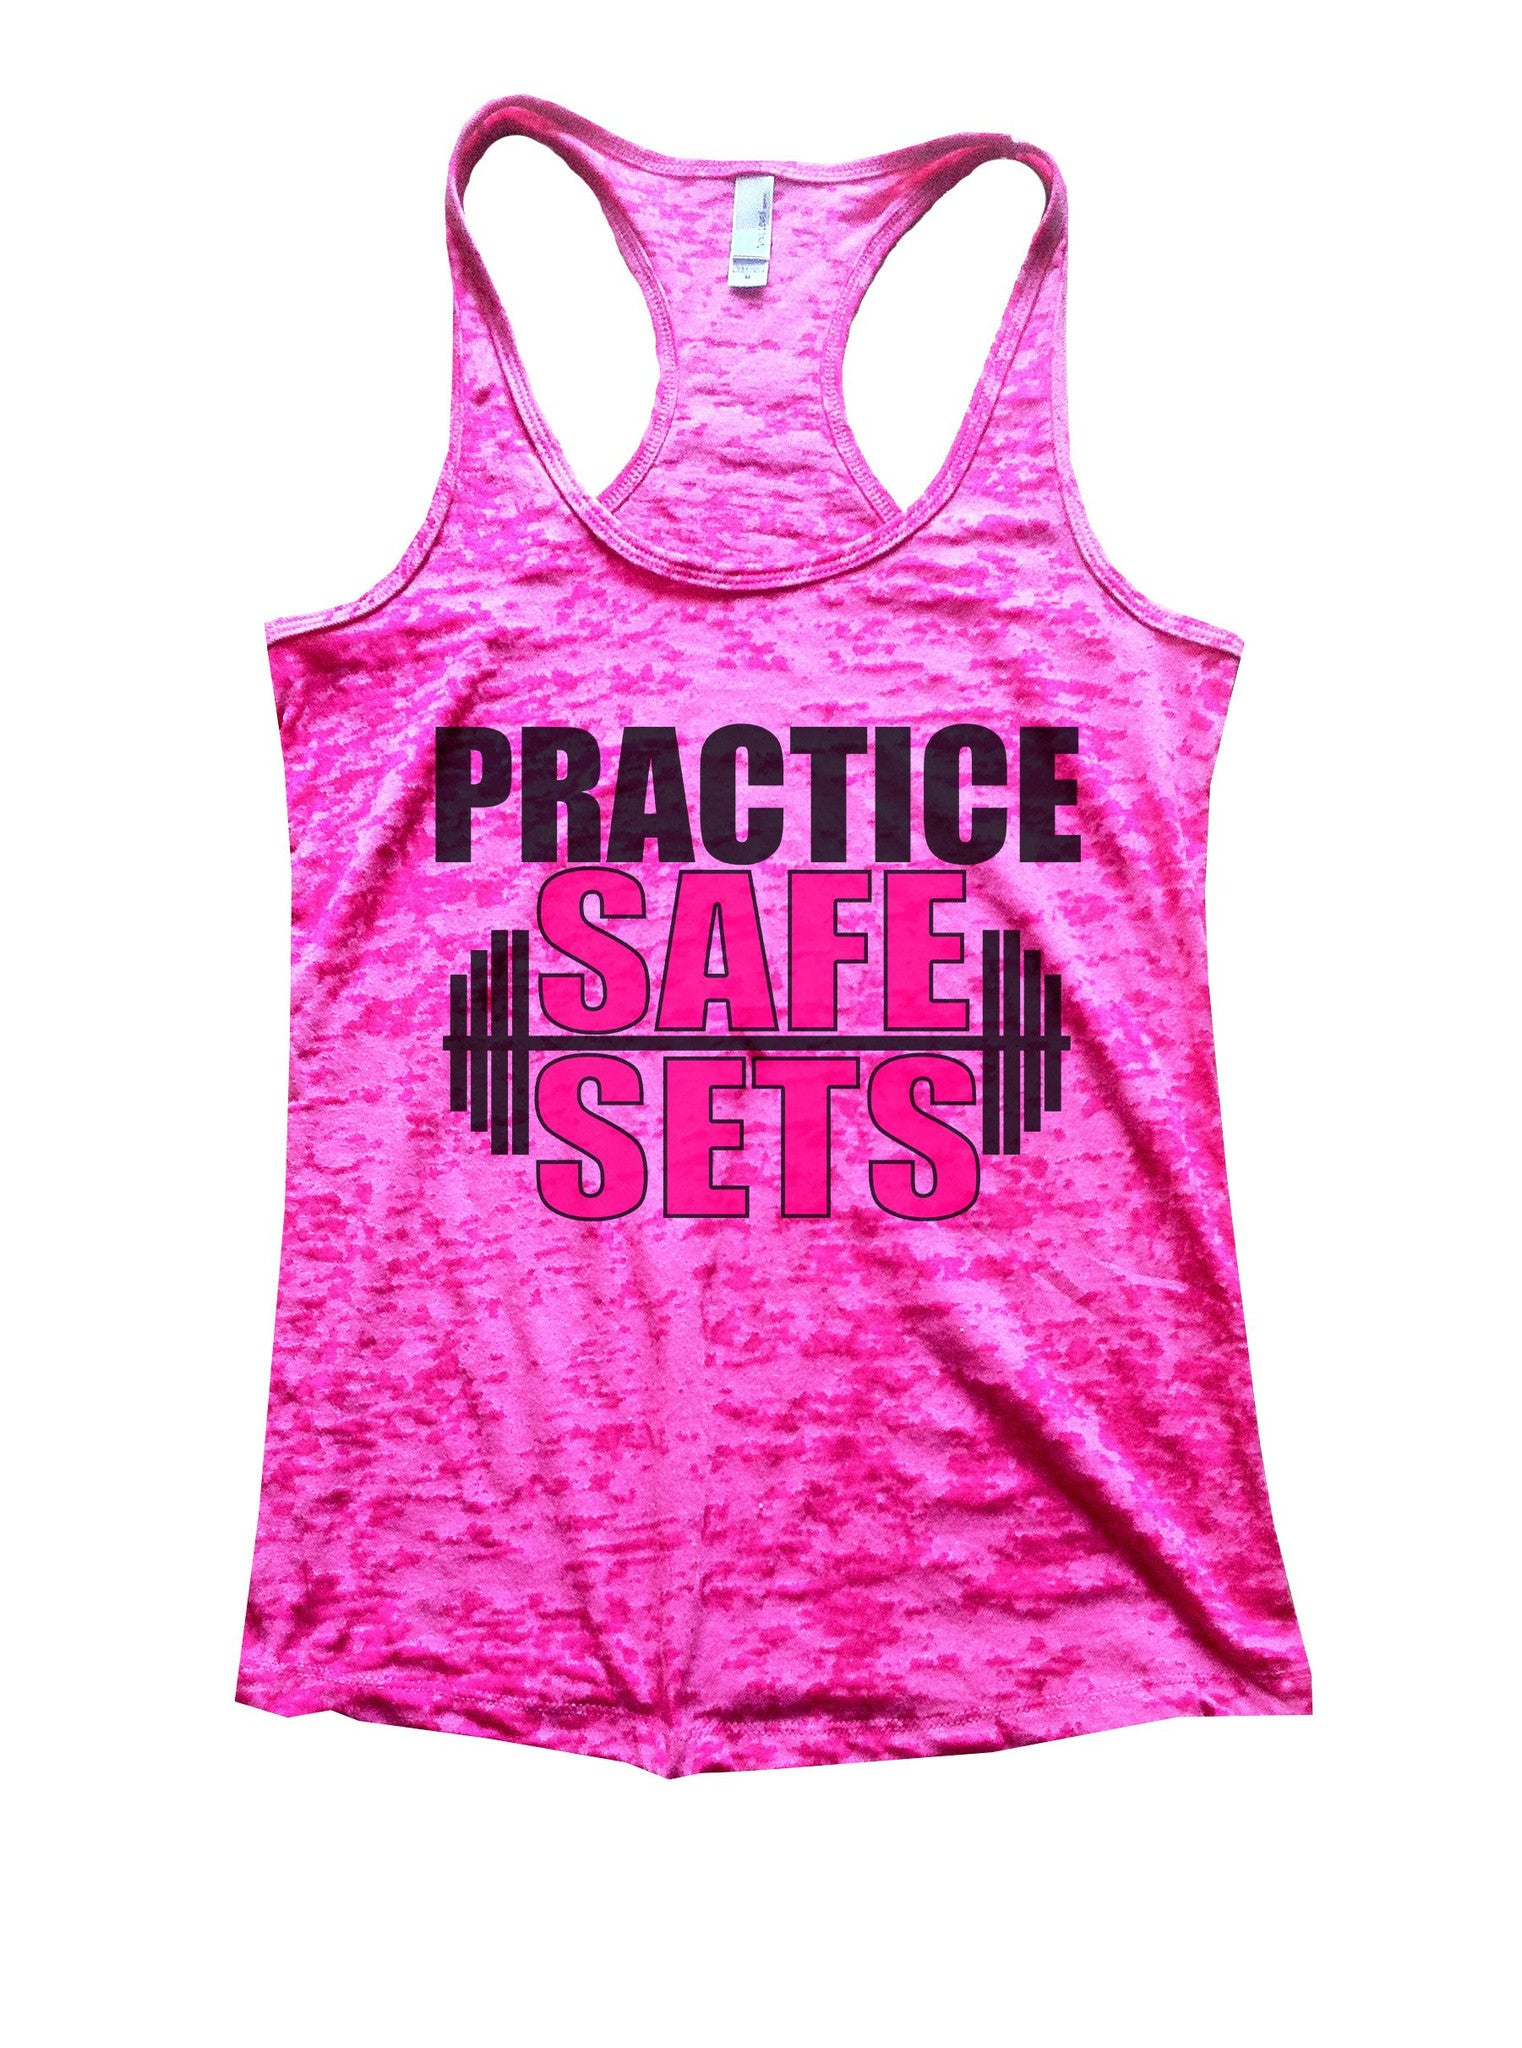 Practice Safe Sets Burnout Tank Top By BurnoutTankTops.com - 1124 - Funny Shirts Tank Tops Burnouts and Triblends  - 6